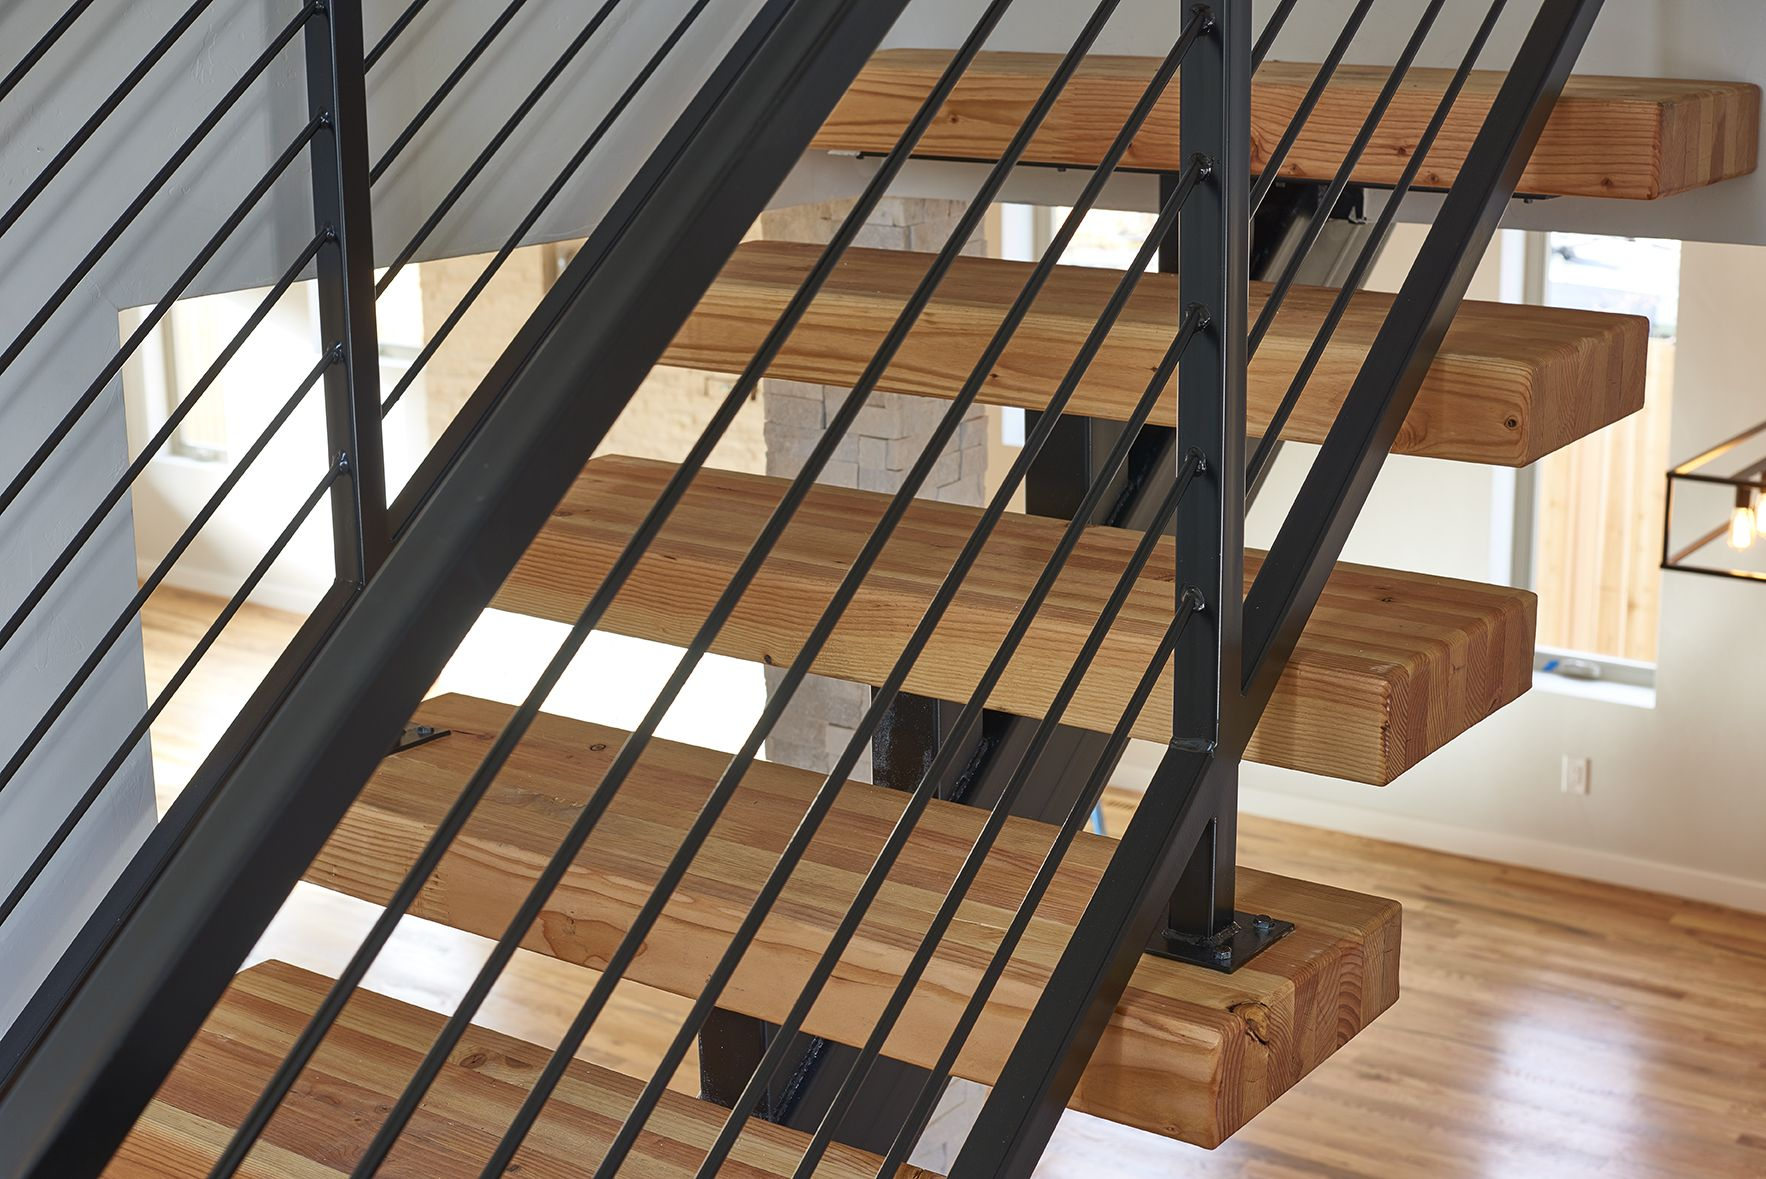 Butcher Block Stairs With Horizontal Wrought Iron Railings In